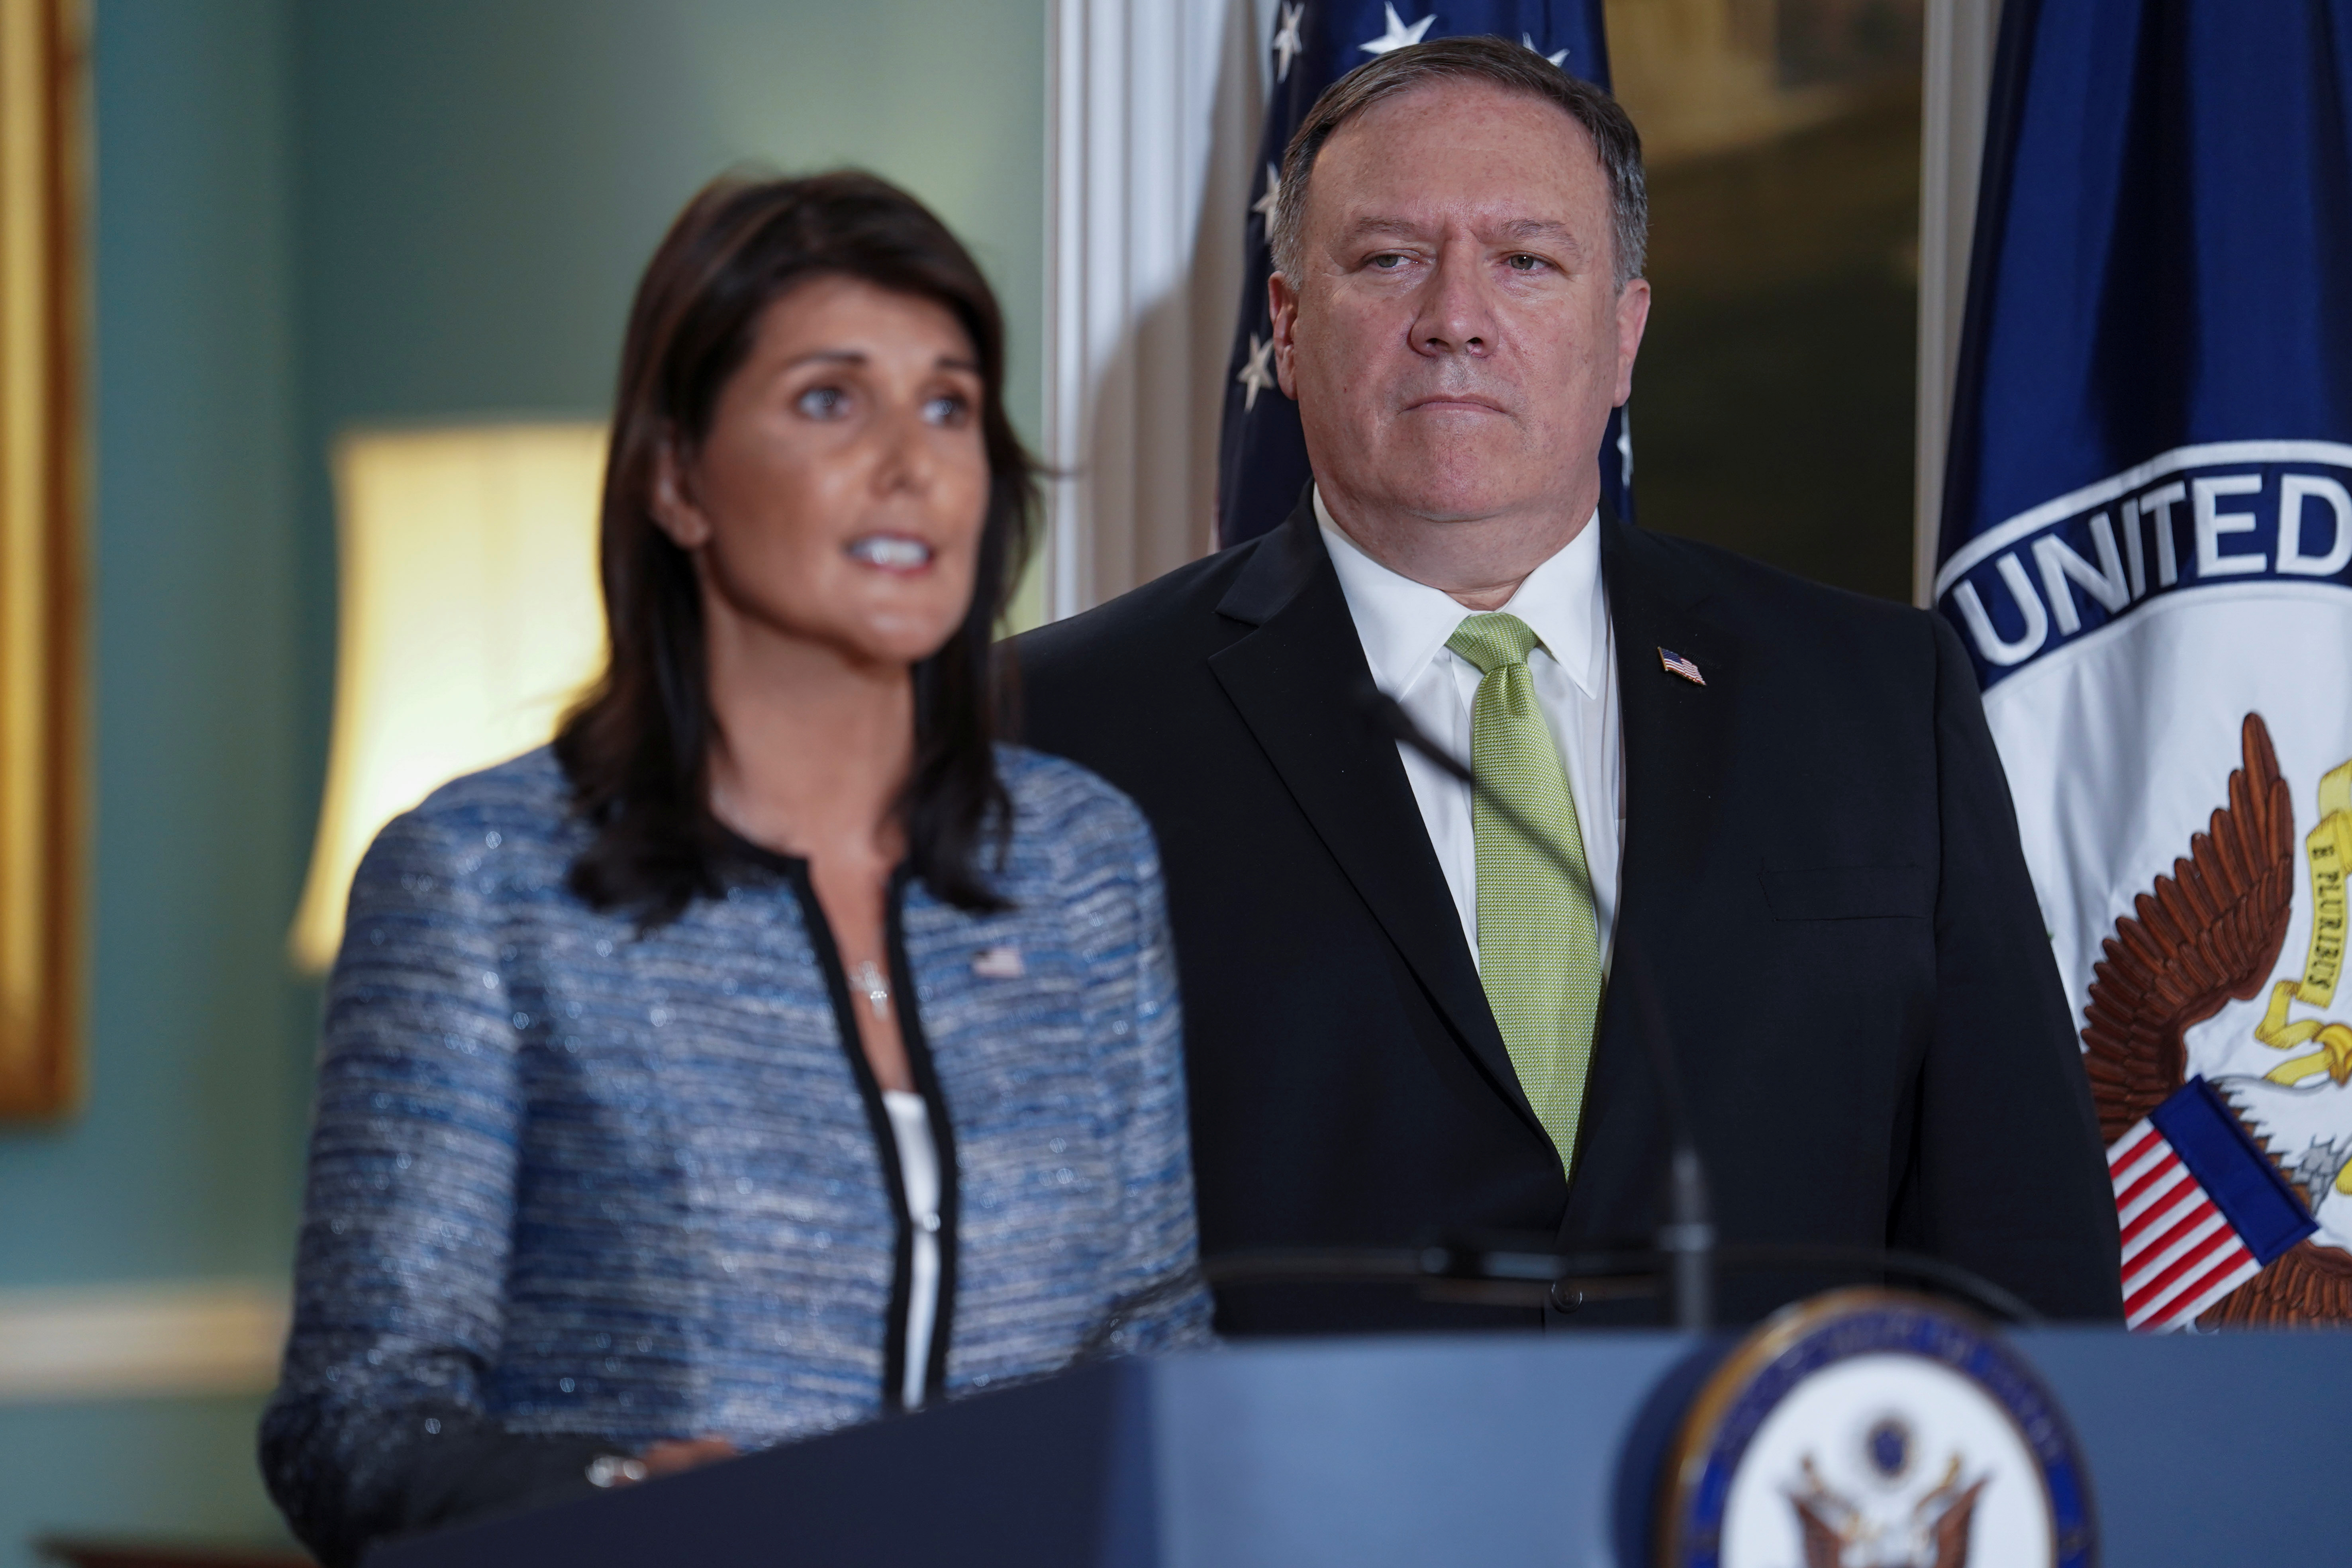 U.S. Ambassador to the United Nations Nikki Haley delivers remarks to the press together with U.S. Secretary of State Mike Pompeo, announcing the U.S.'s withdrawal from the U.N's Human Rights Council at the Department of State in Washington, U.S., June 19, 2018. REUTERS/Toya Sarno Jordan - RC13BD79BC40